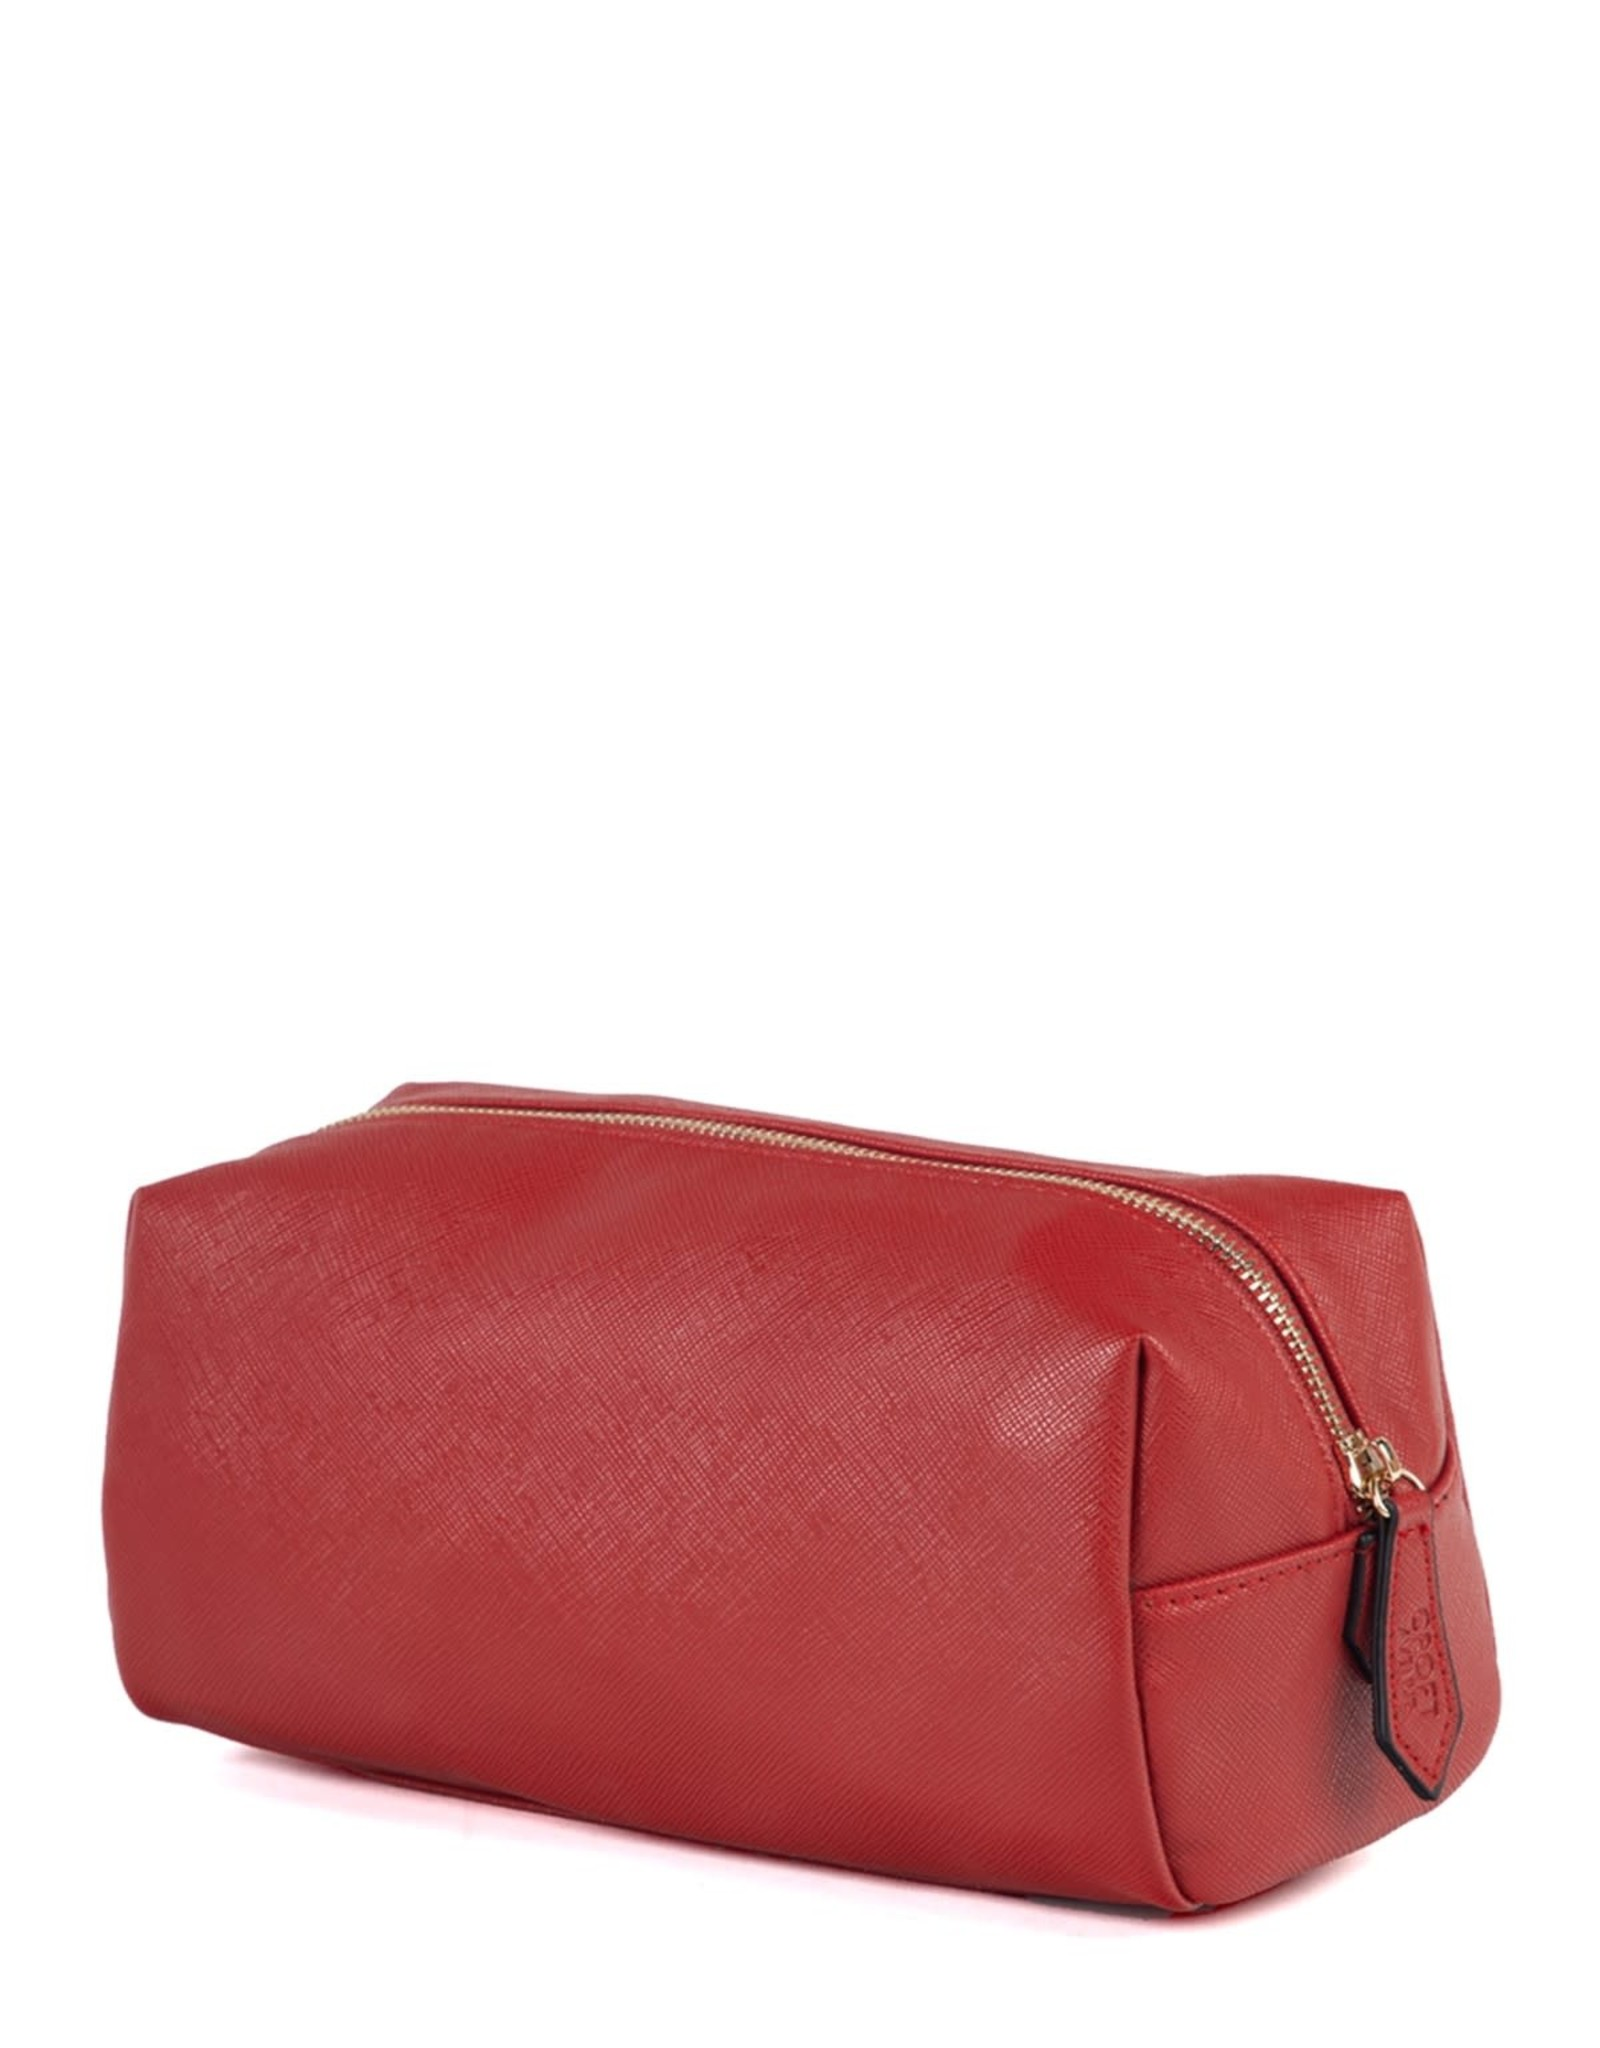 Brouk & Co Alexa Toiletry Bag Red